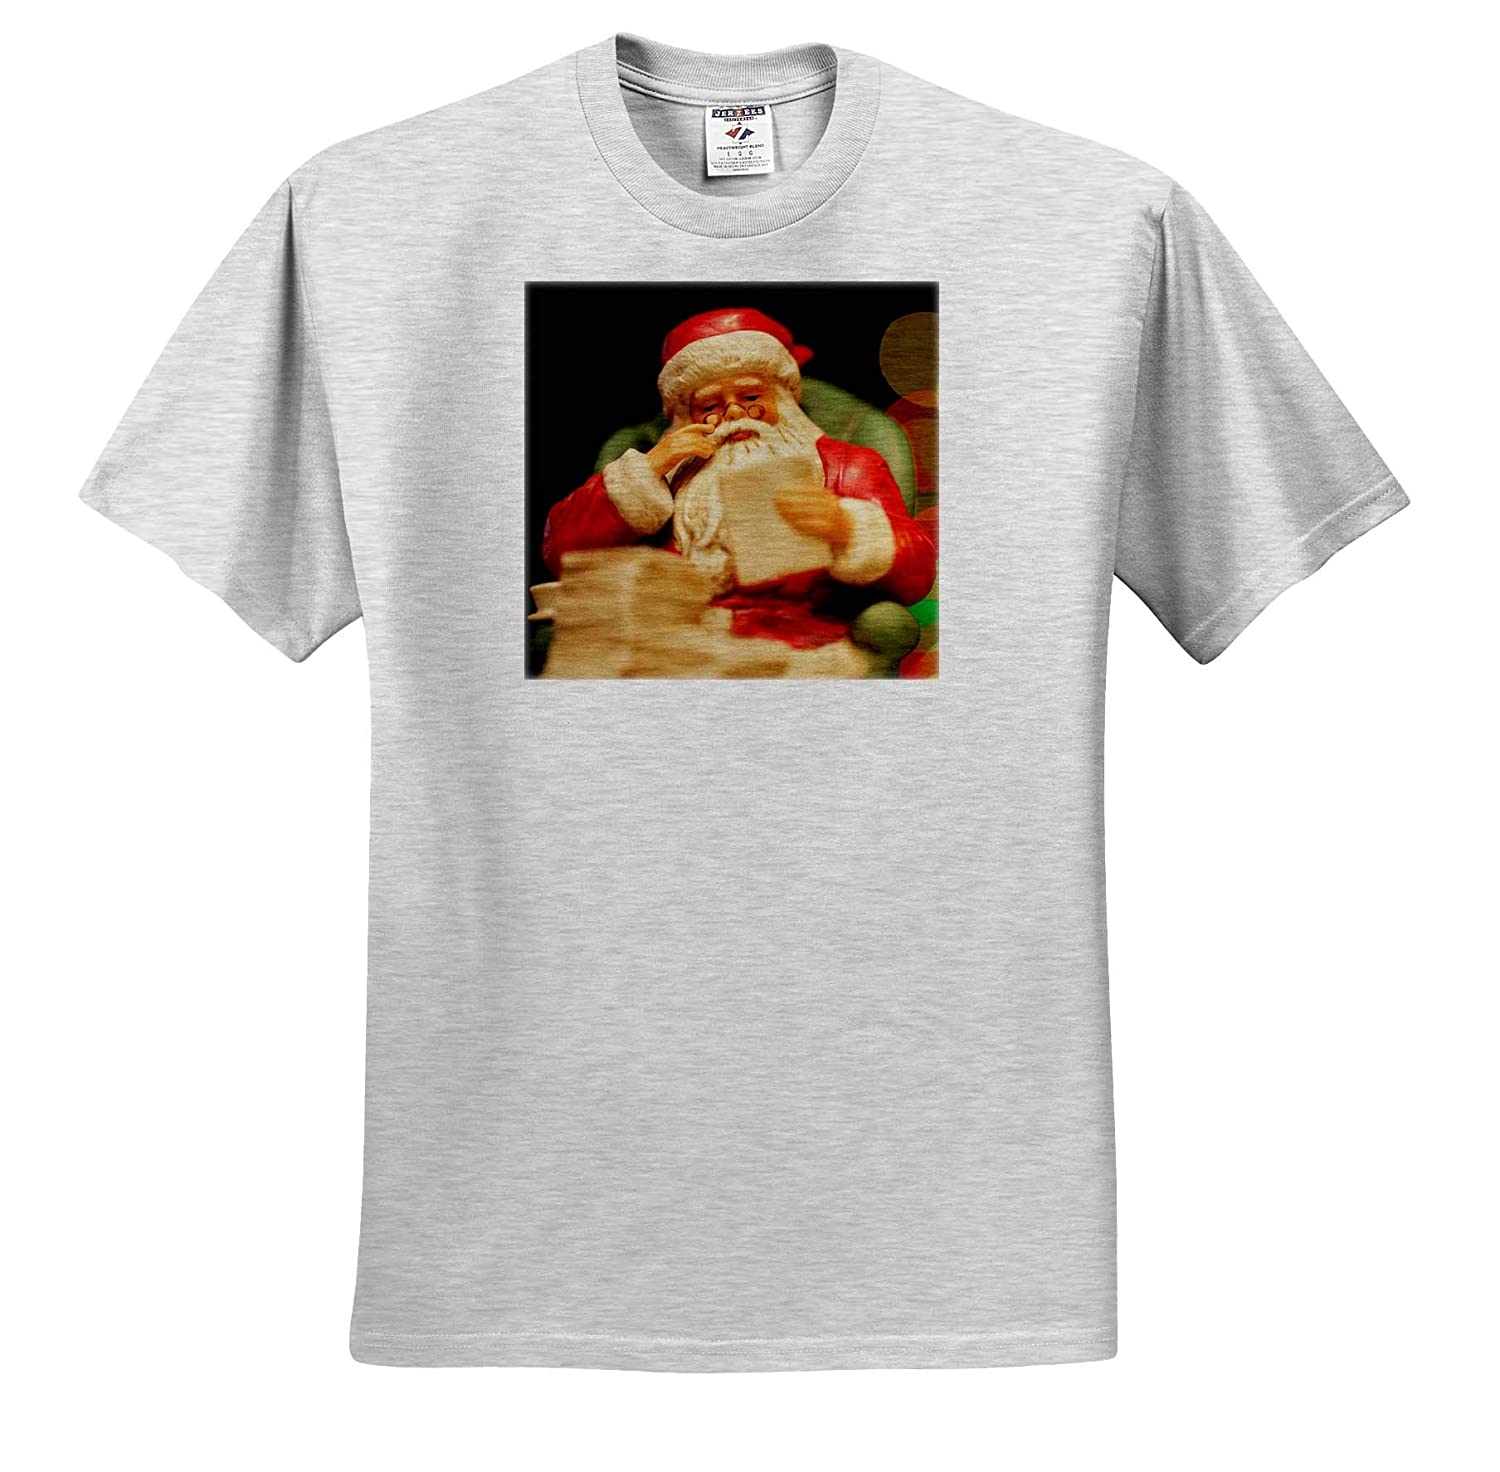 - T-Shirts Checking his List 3dRose Stamp City Photograph of a Ceramic Santa Sitting in his Chair Holiday